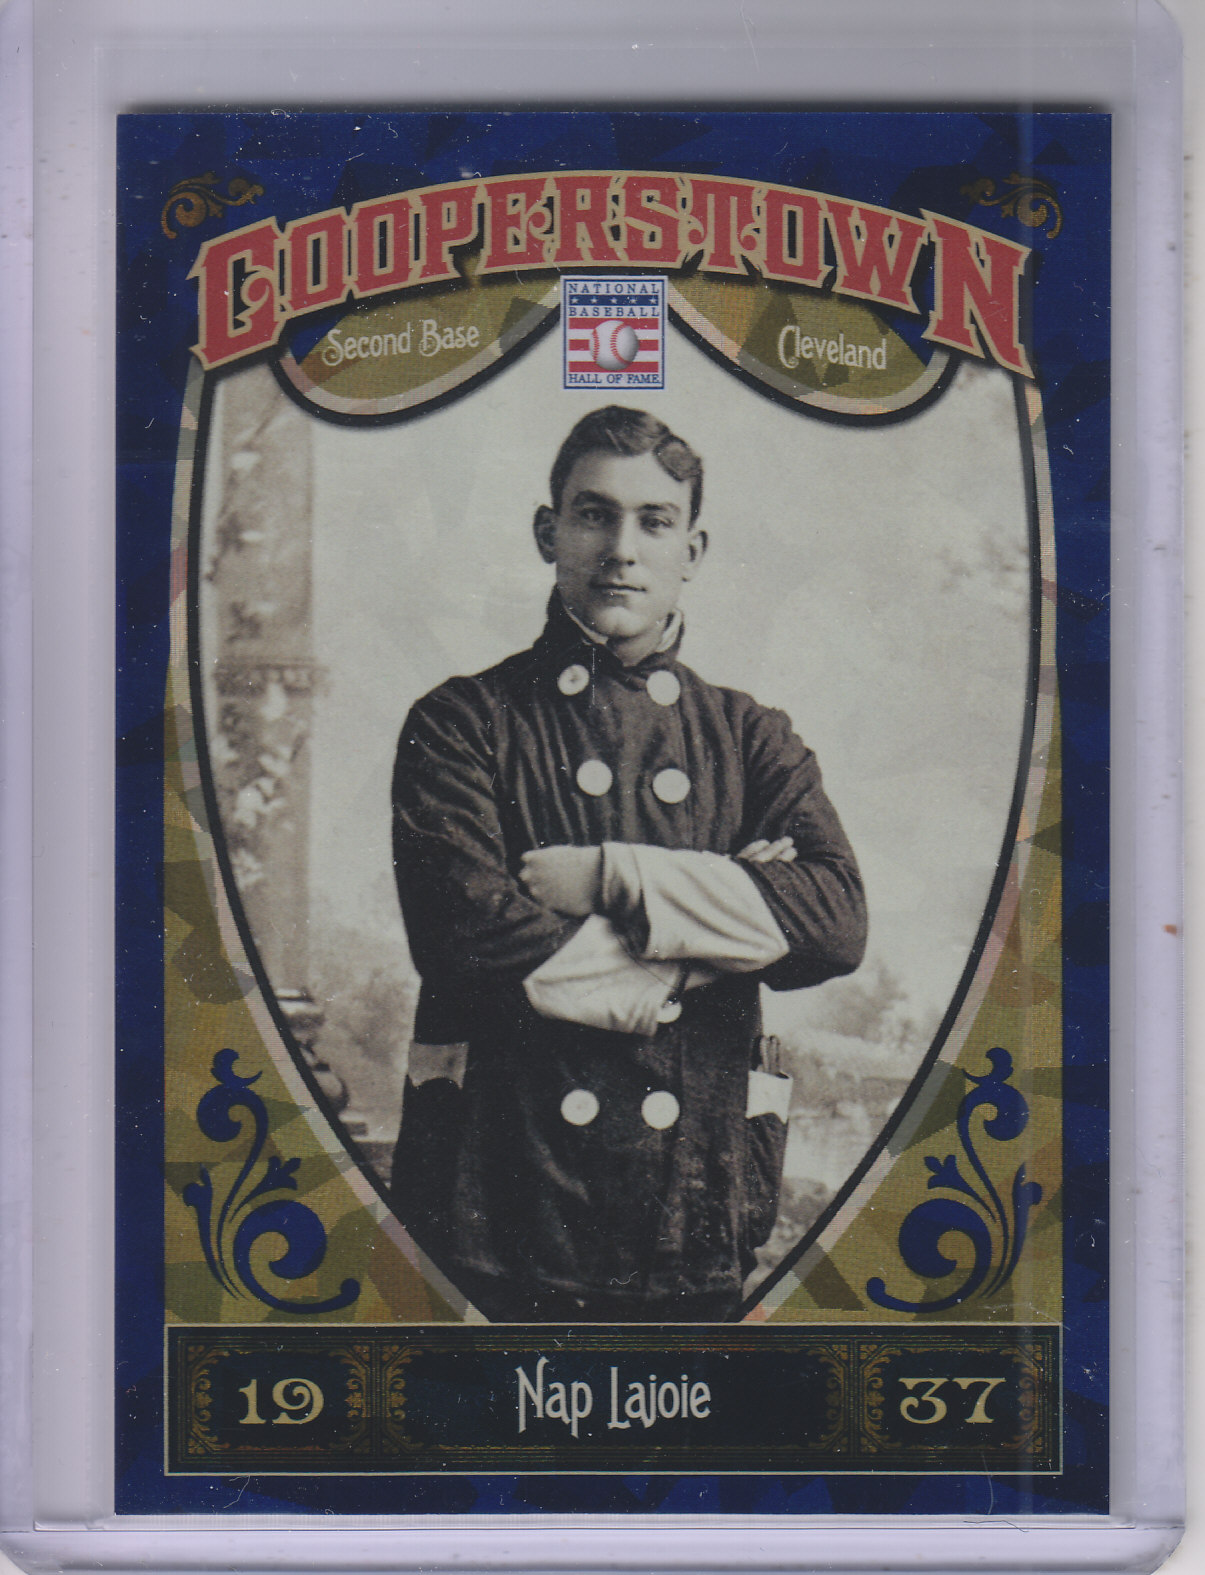 2013 Panini Cooperstown Blue Crystal #19 Nap Lajoie